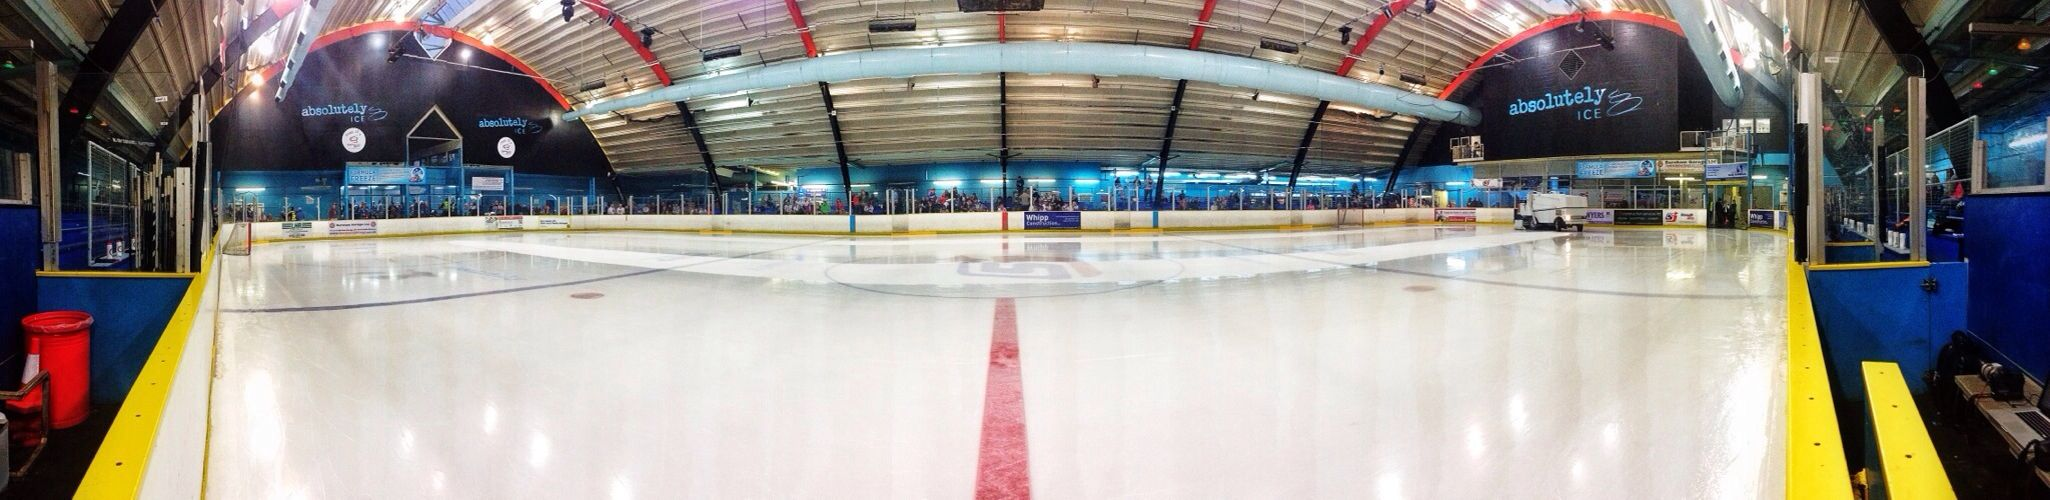 Waiting for the second period. Slough Slough Jets Zamboni Ice Hockey Photography #panoramic